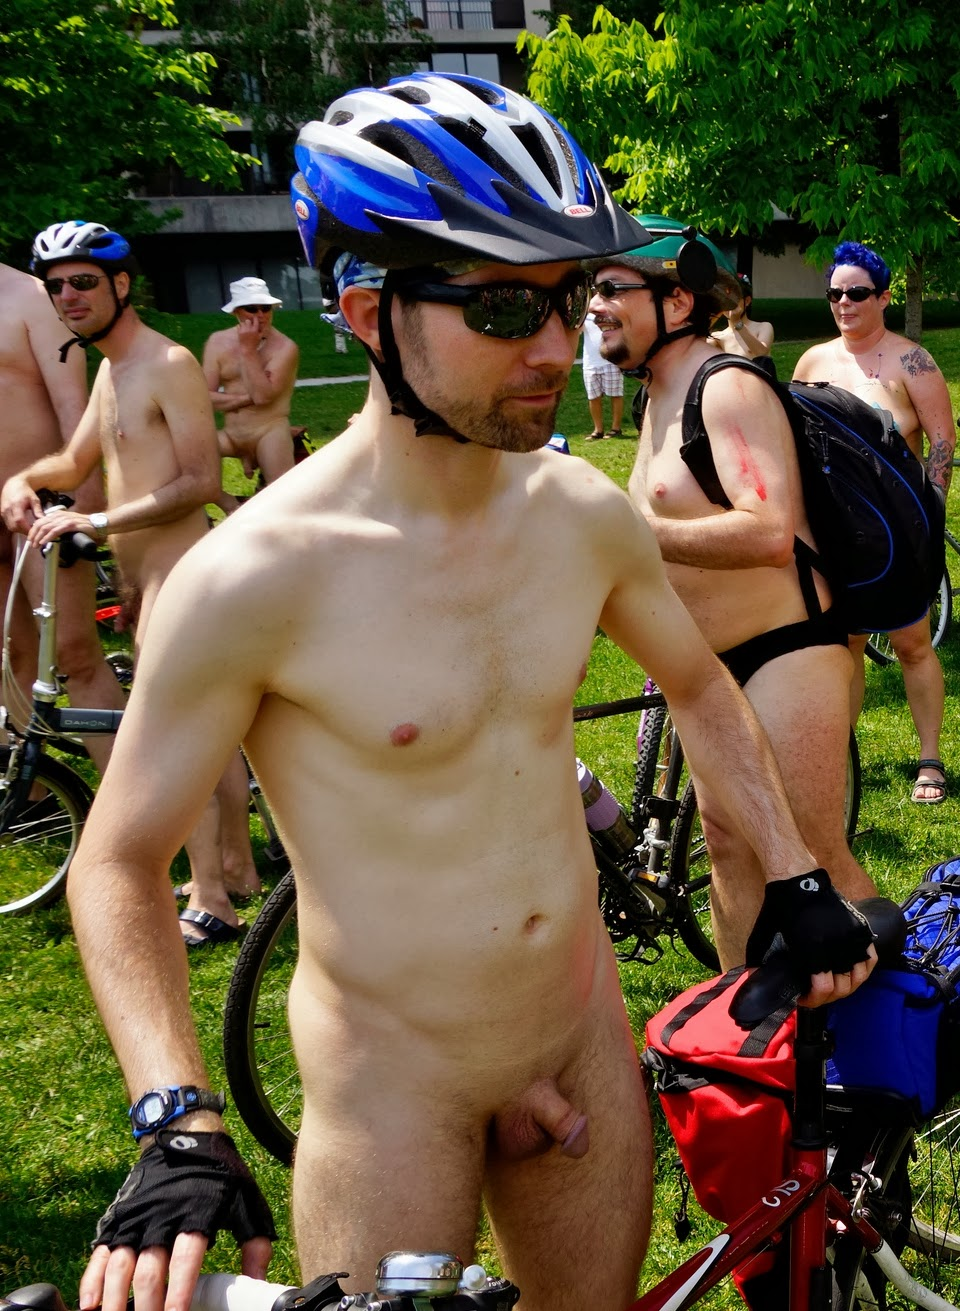 Numb penis while riding bike